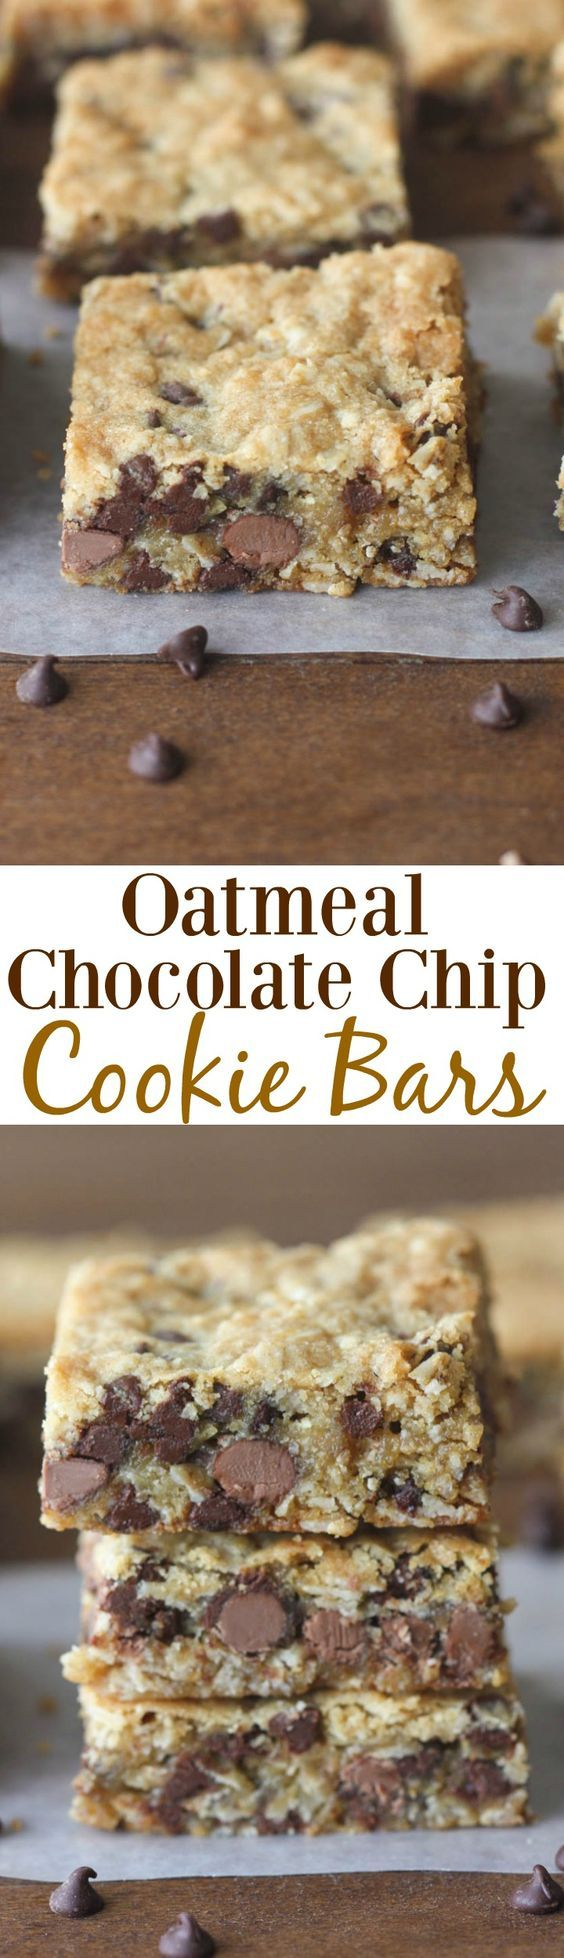 Oatmeal Chocolate Chip Cookie Bars - thick and chewy cookie bars with oats and chocolate. A family favorite!| Tastes Better From Scratch.